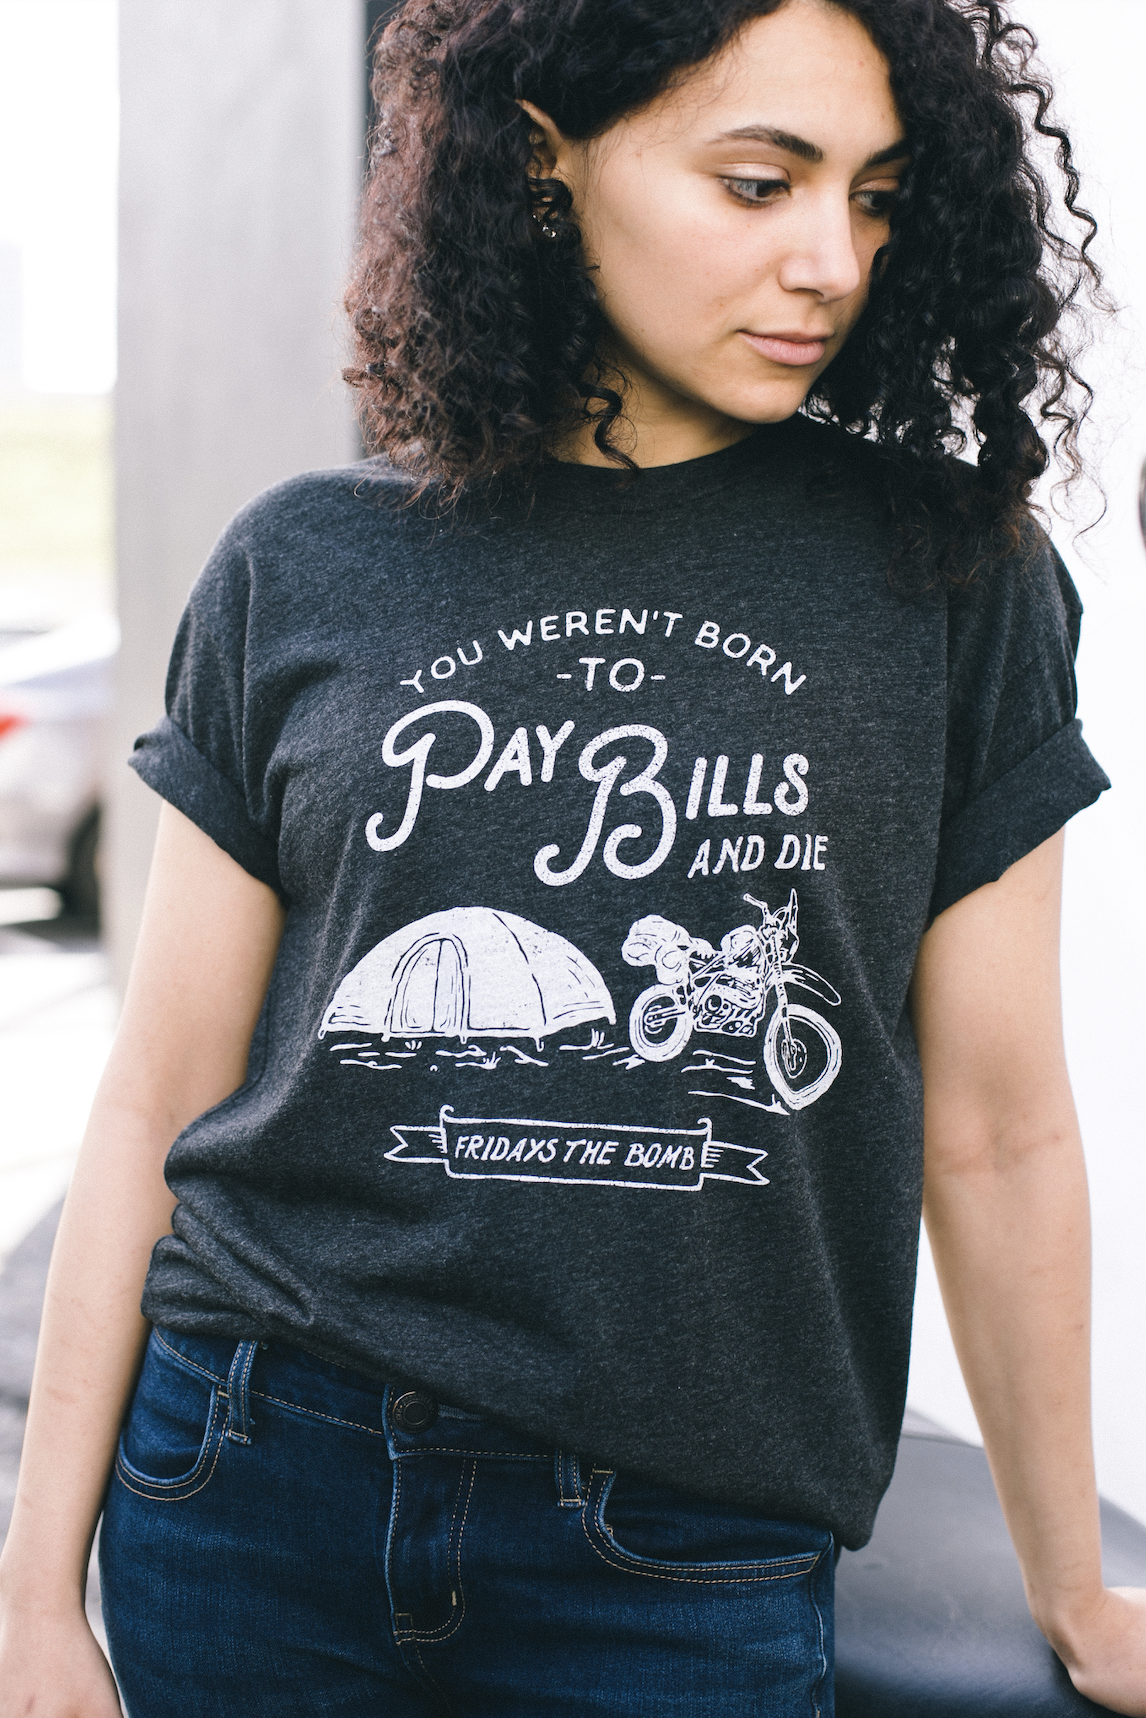 A curly-haired girl wears a dark gray custom printed t-shirt.